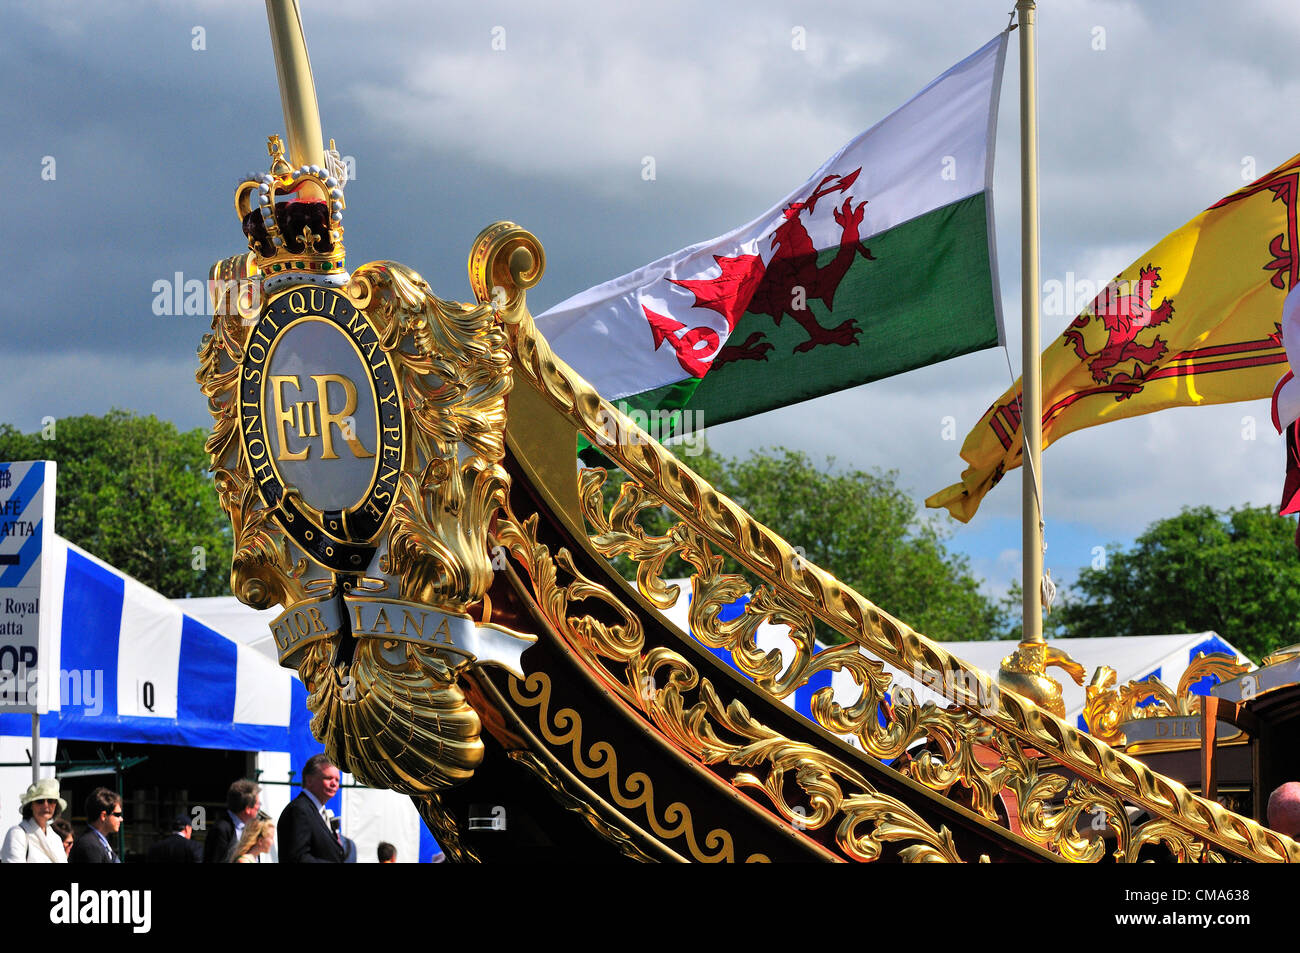 the royal barge Gloriana, moored at Henley on Thames during the Henley Royal Regatta July 1 2012 Over 170 of Great - Stock Image